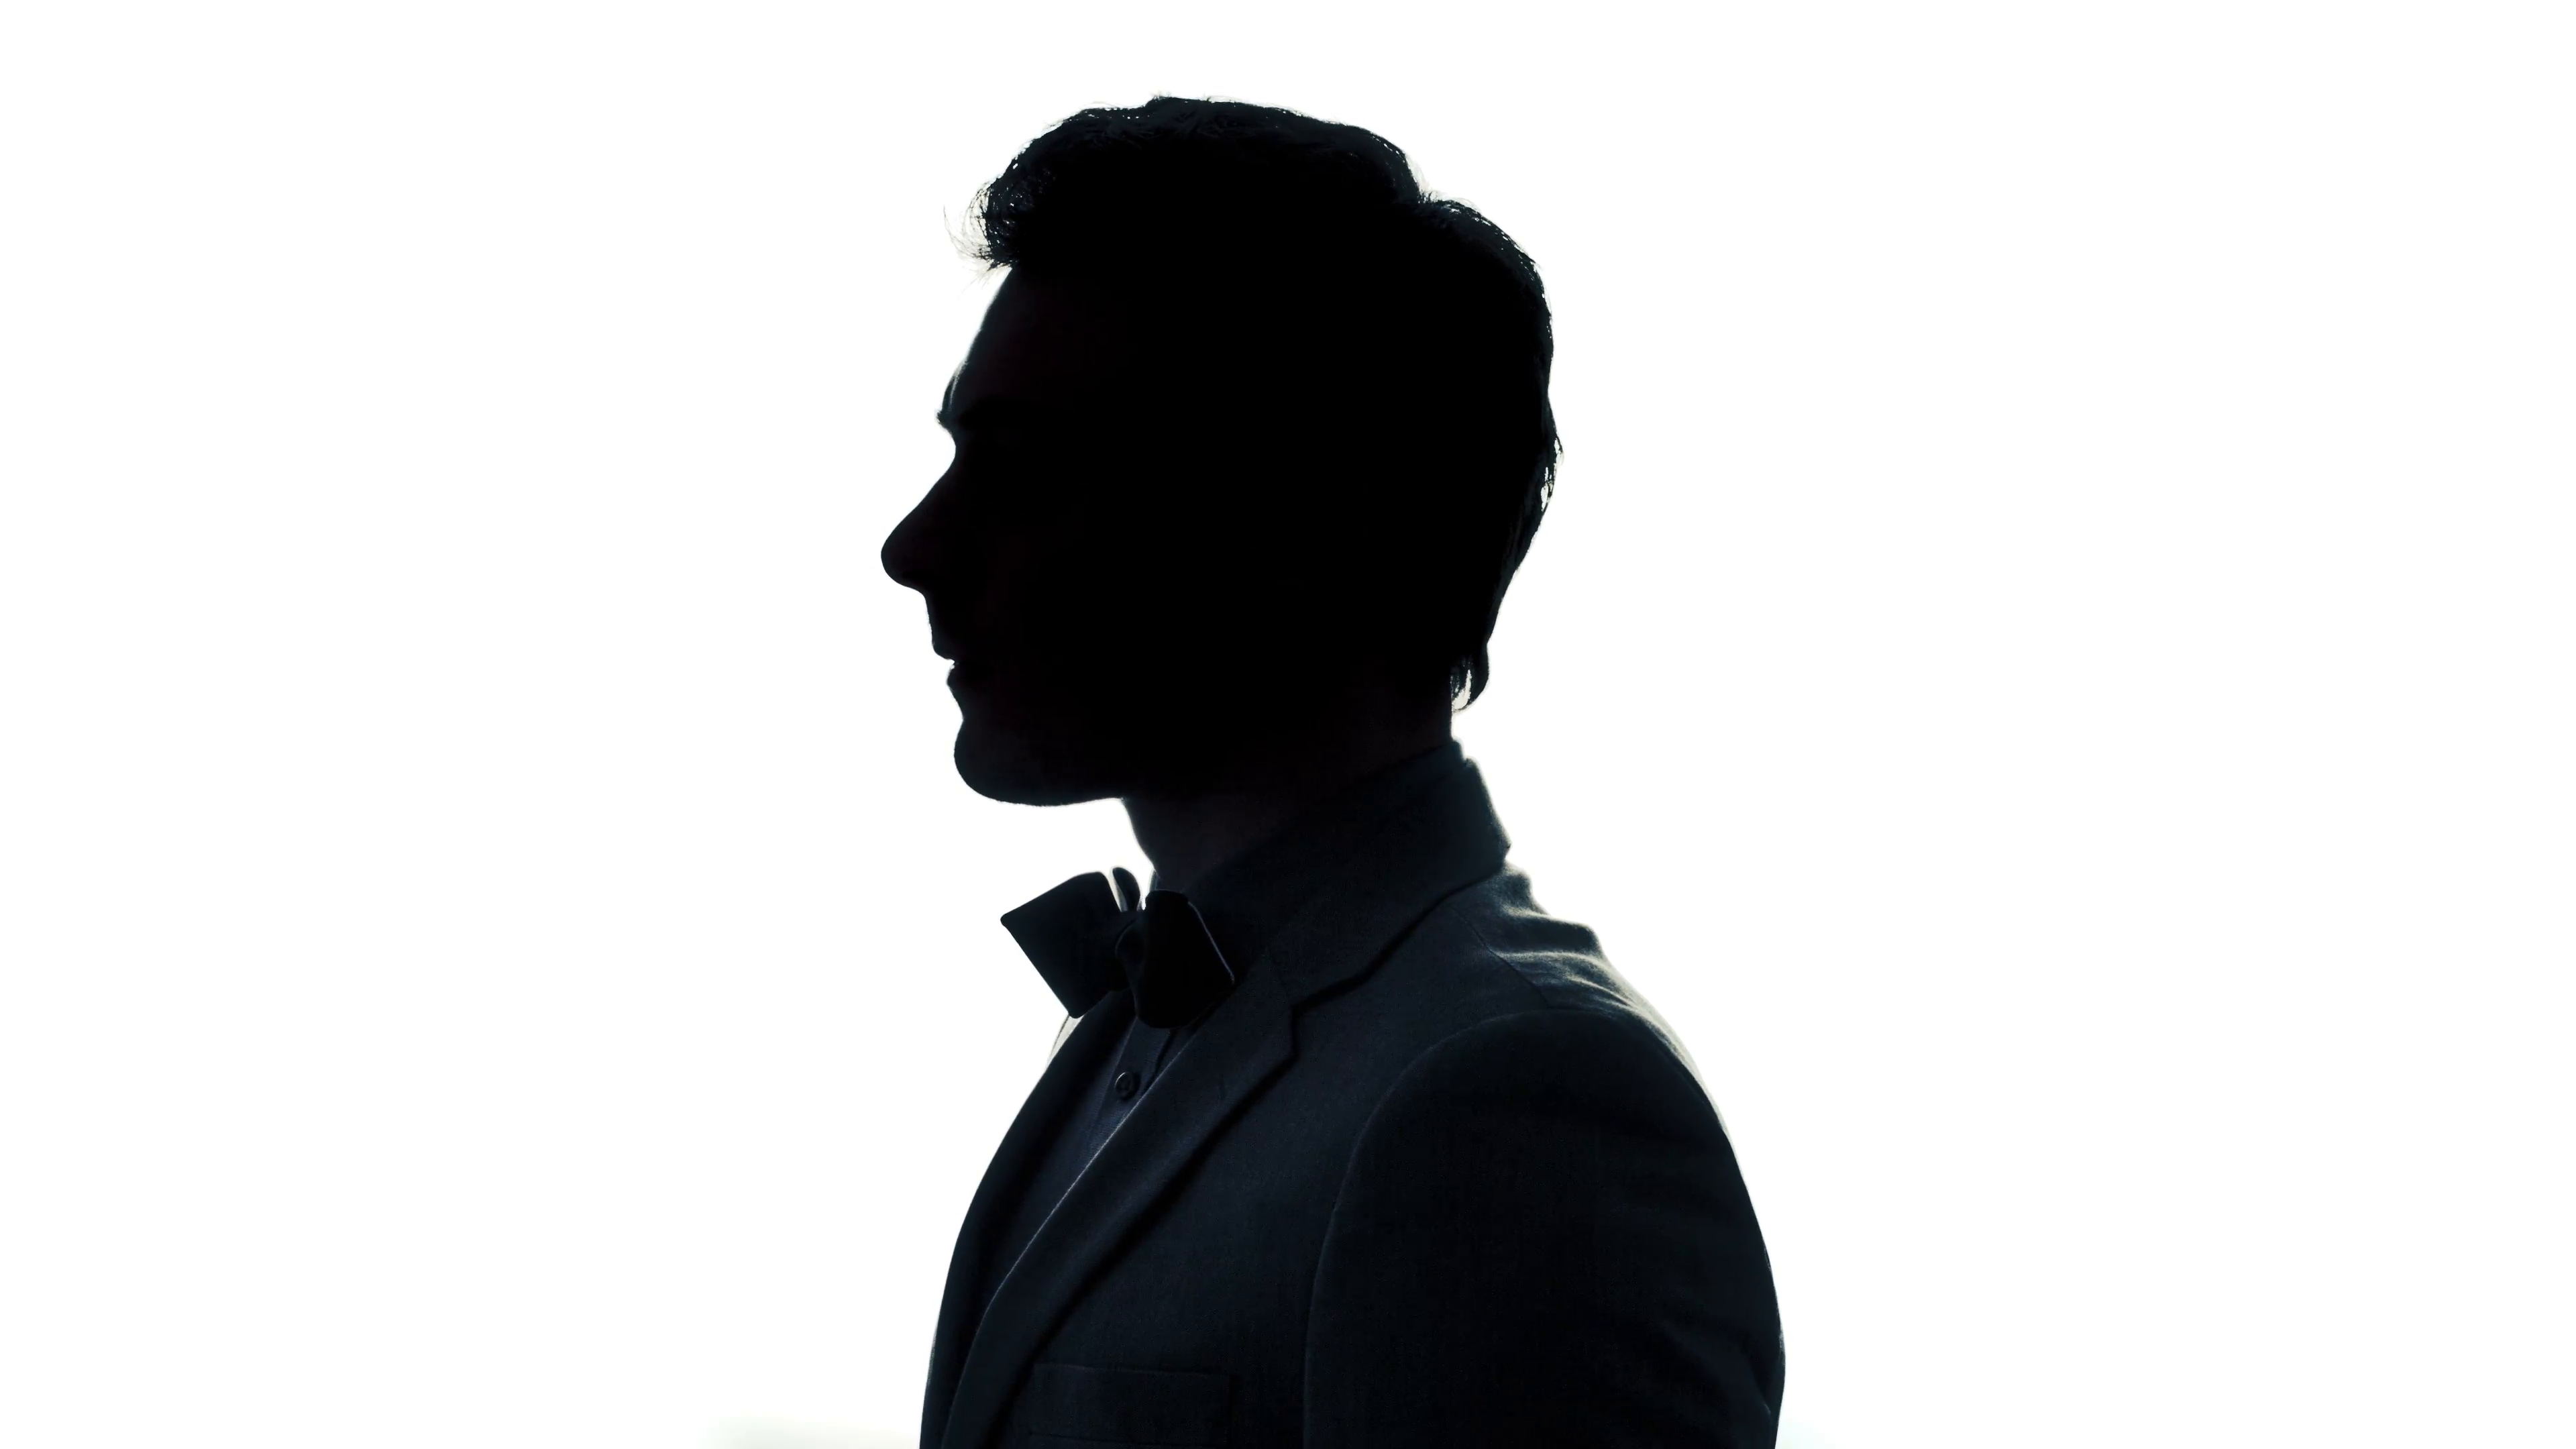 3840x2160 Well Dressed Young Man With A Classic Bow Tie In Silhouette Stock